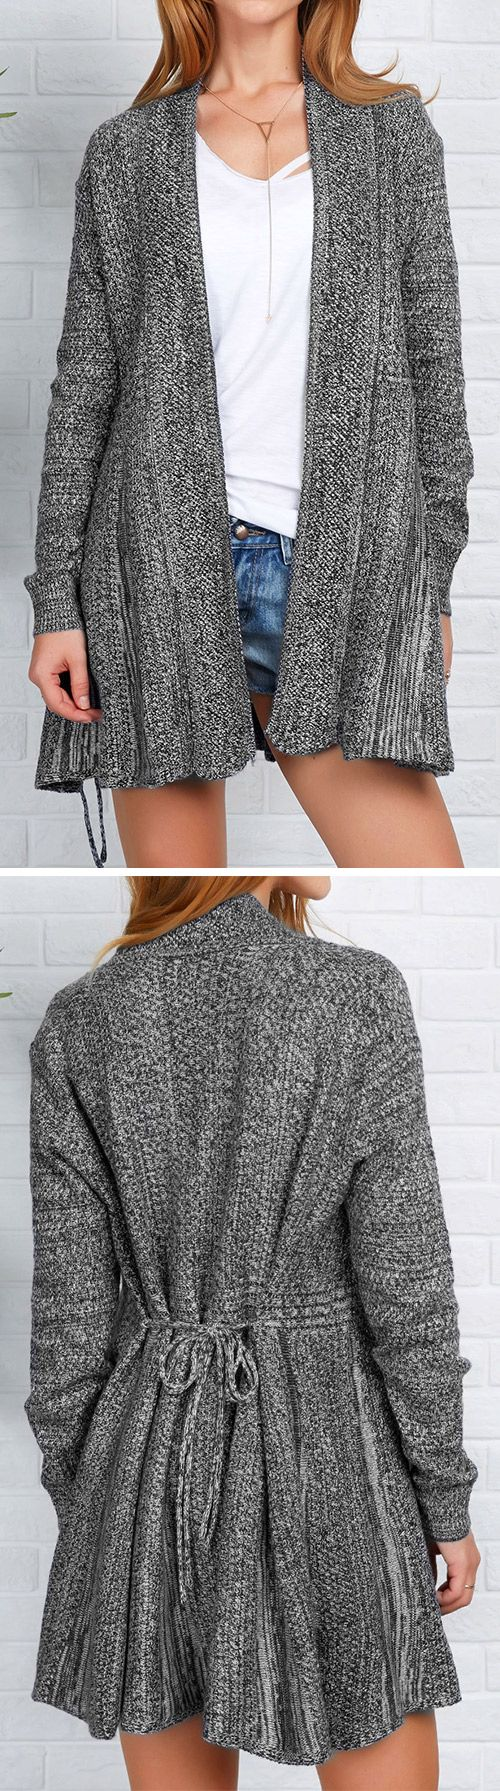 Only $27.99 for this Sweater cardigan& free shipping~ Easy Return+Refund! You have just entered cardigan heaven! This Open front long sweater cardigan is totally cozy and warm! Cupshe.com will be sure to turn heads!